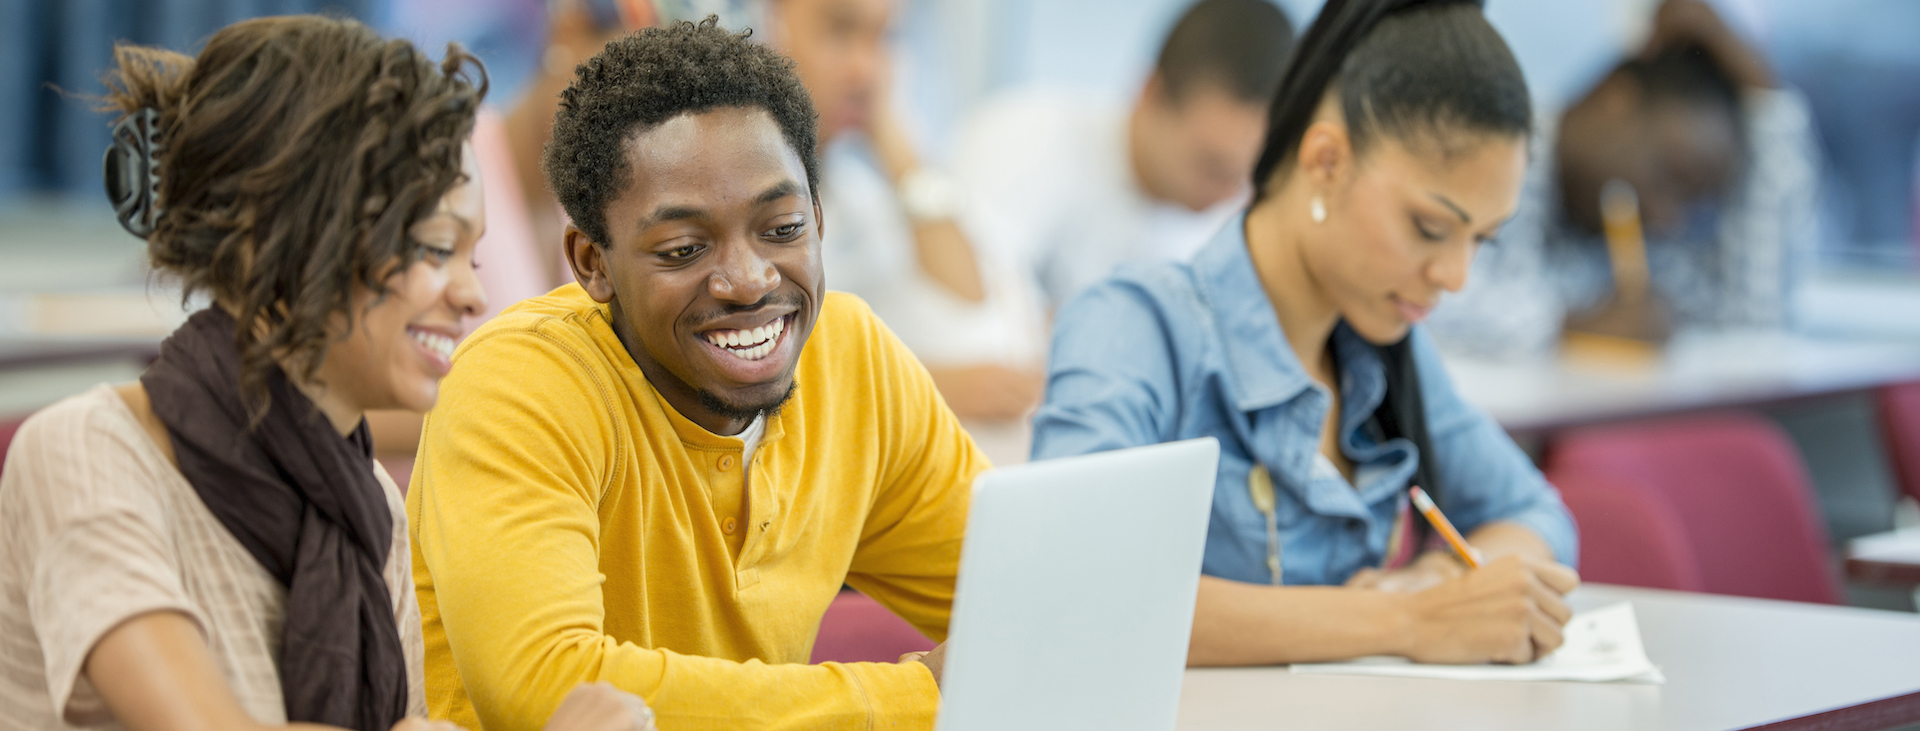 Students smiling looking at laptop